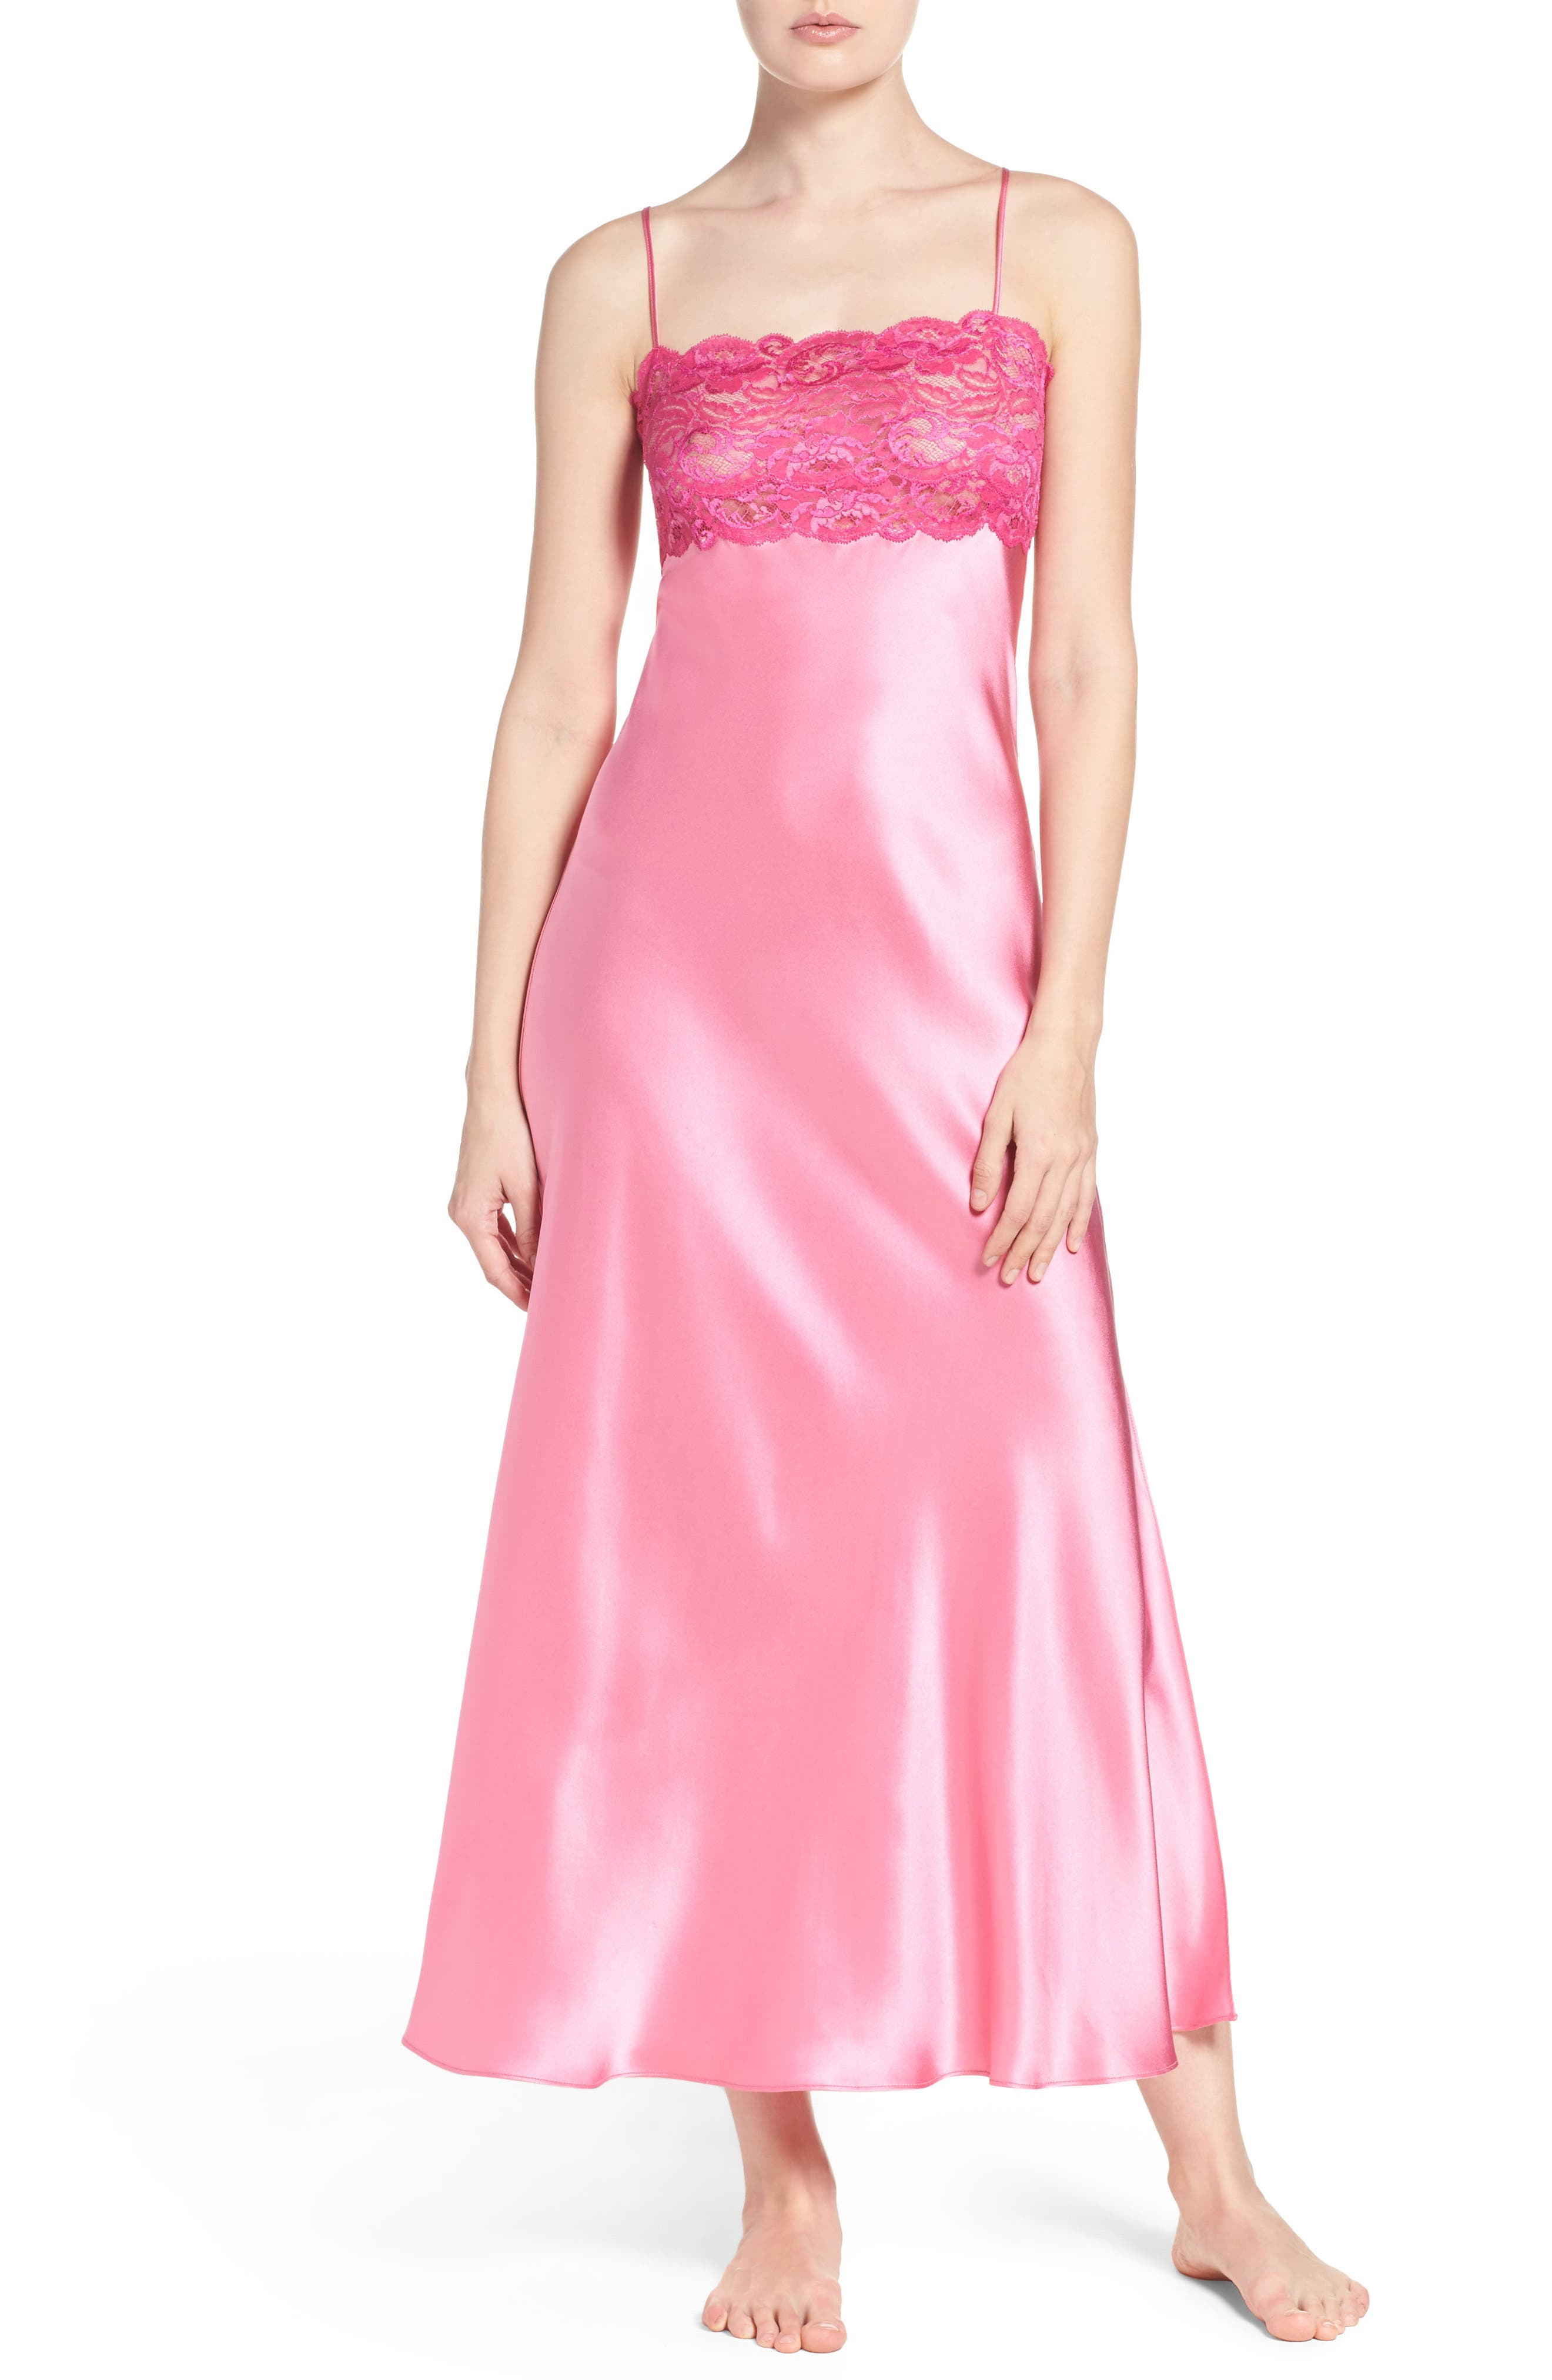 Christine Lingerie Lace & Silk Nightgown